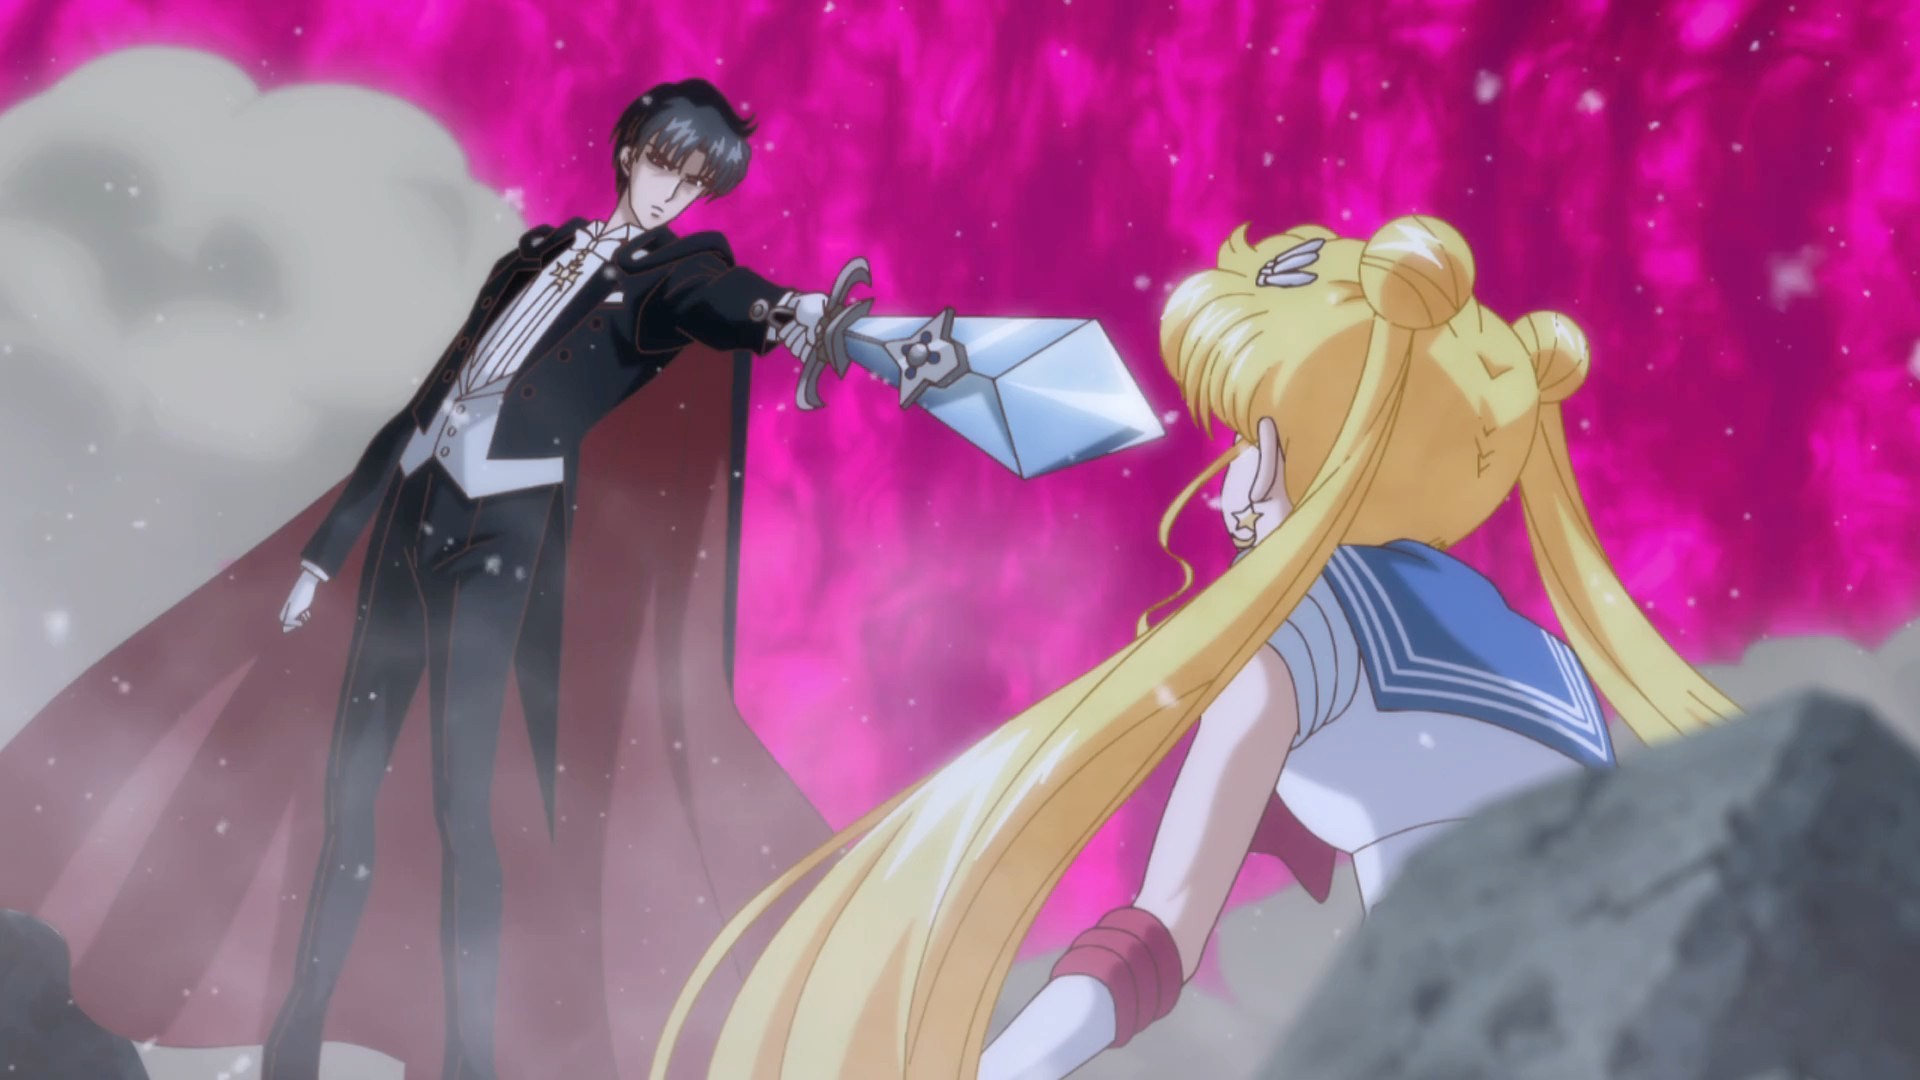 Tuxedo Mask Wallpapers 54 Background Pictures